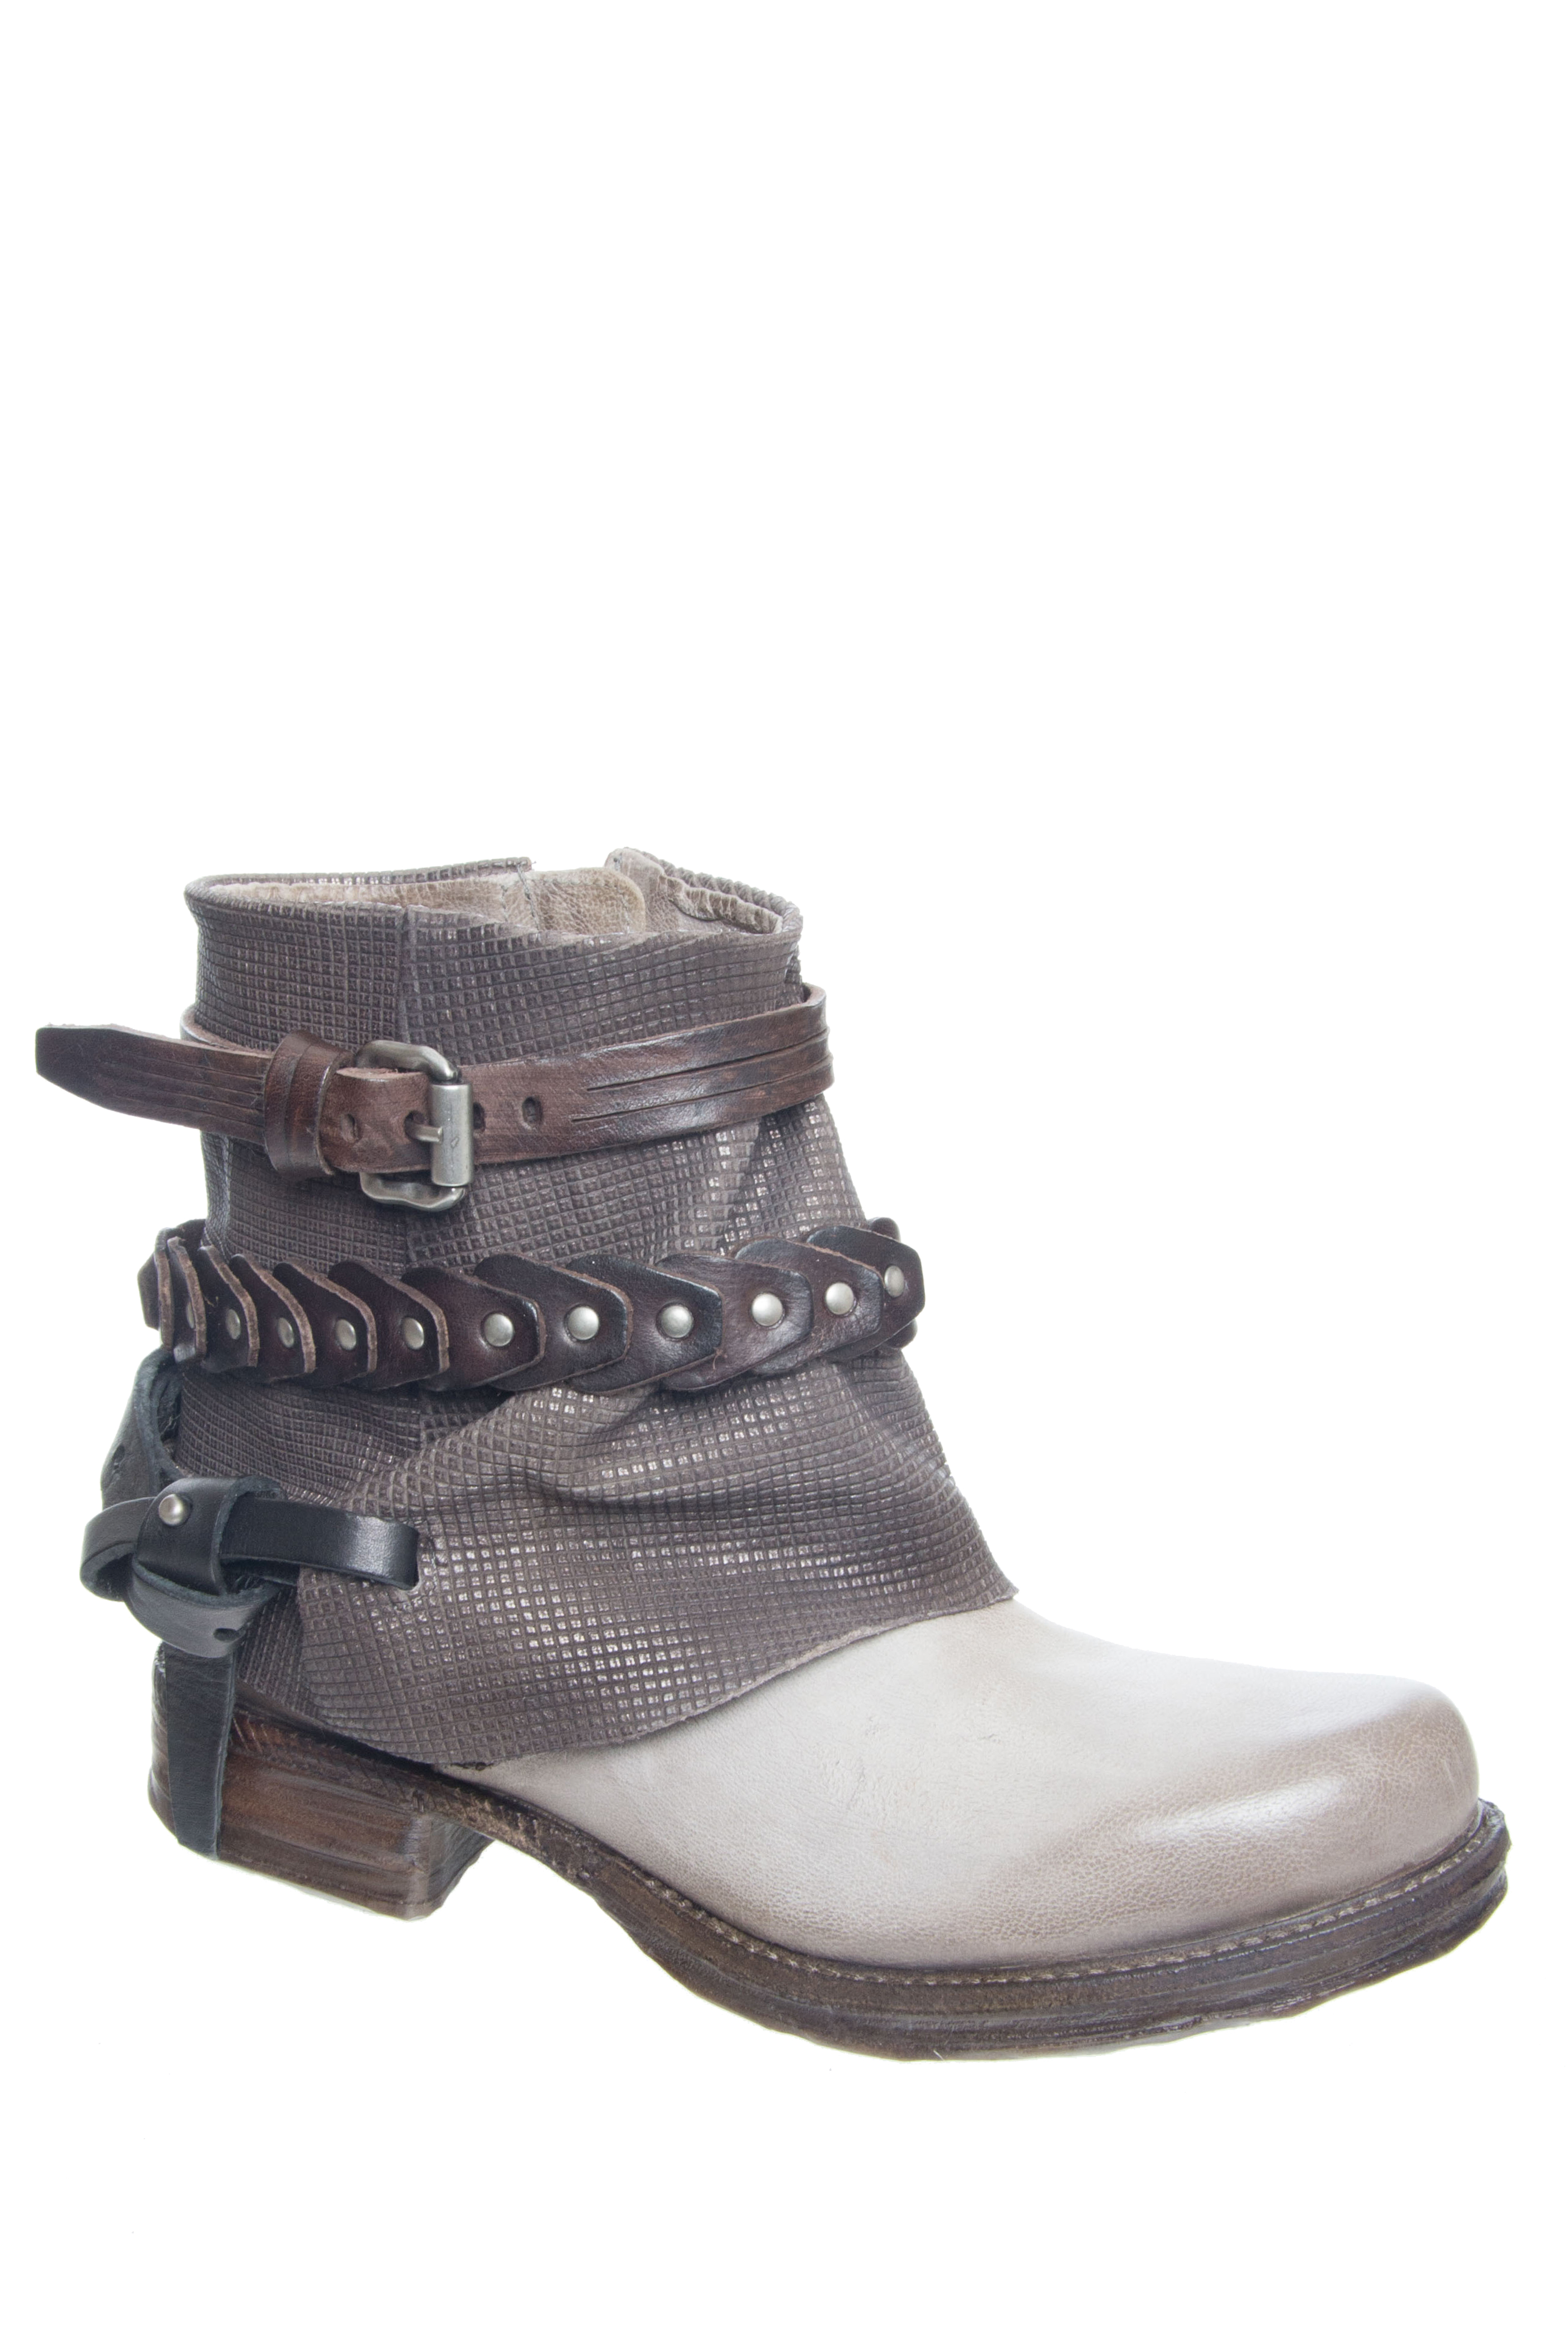 A.S.98 Stratton Low Heel Boots - Grigio